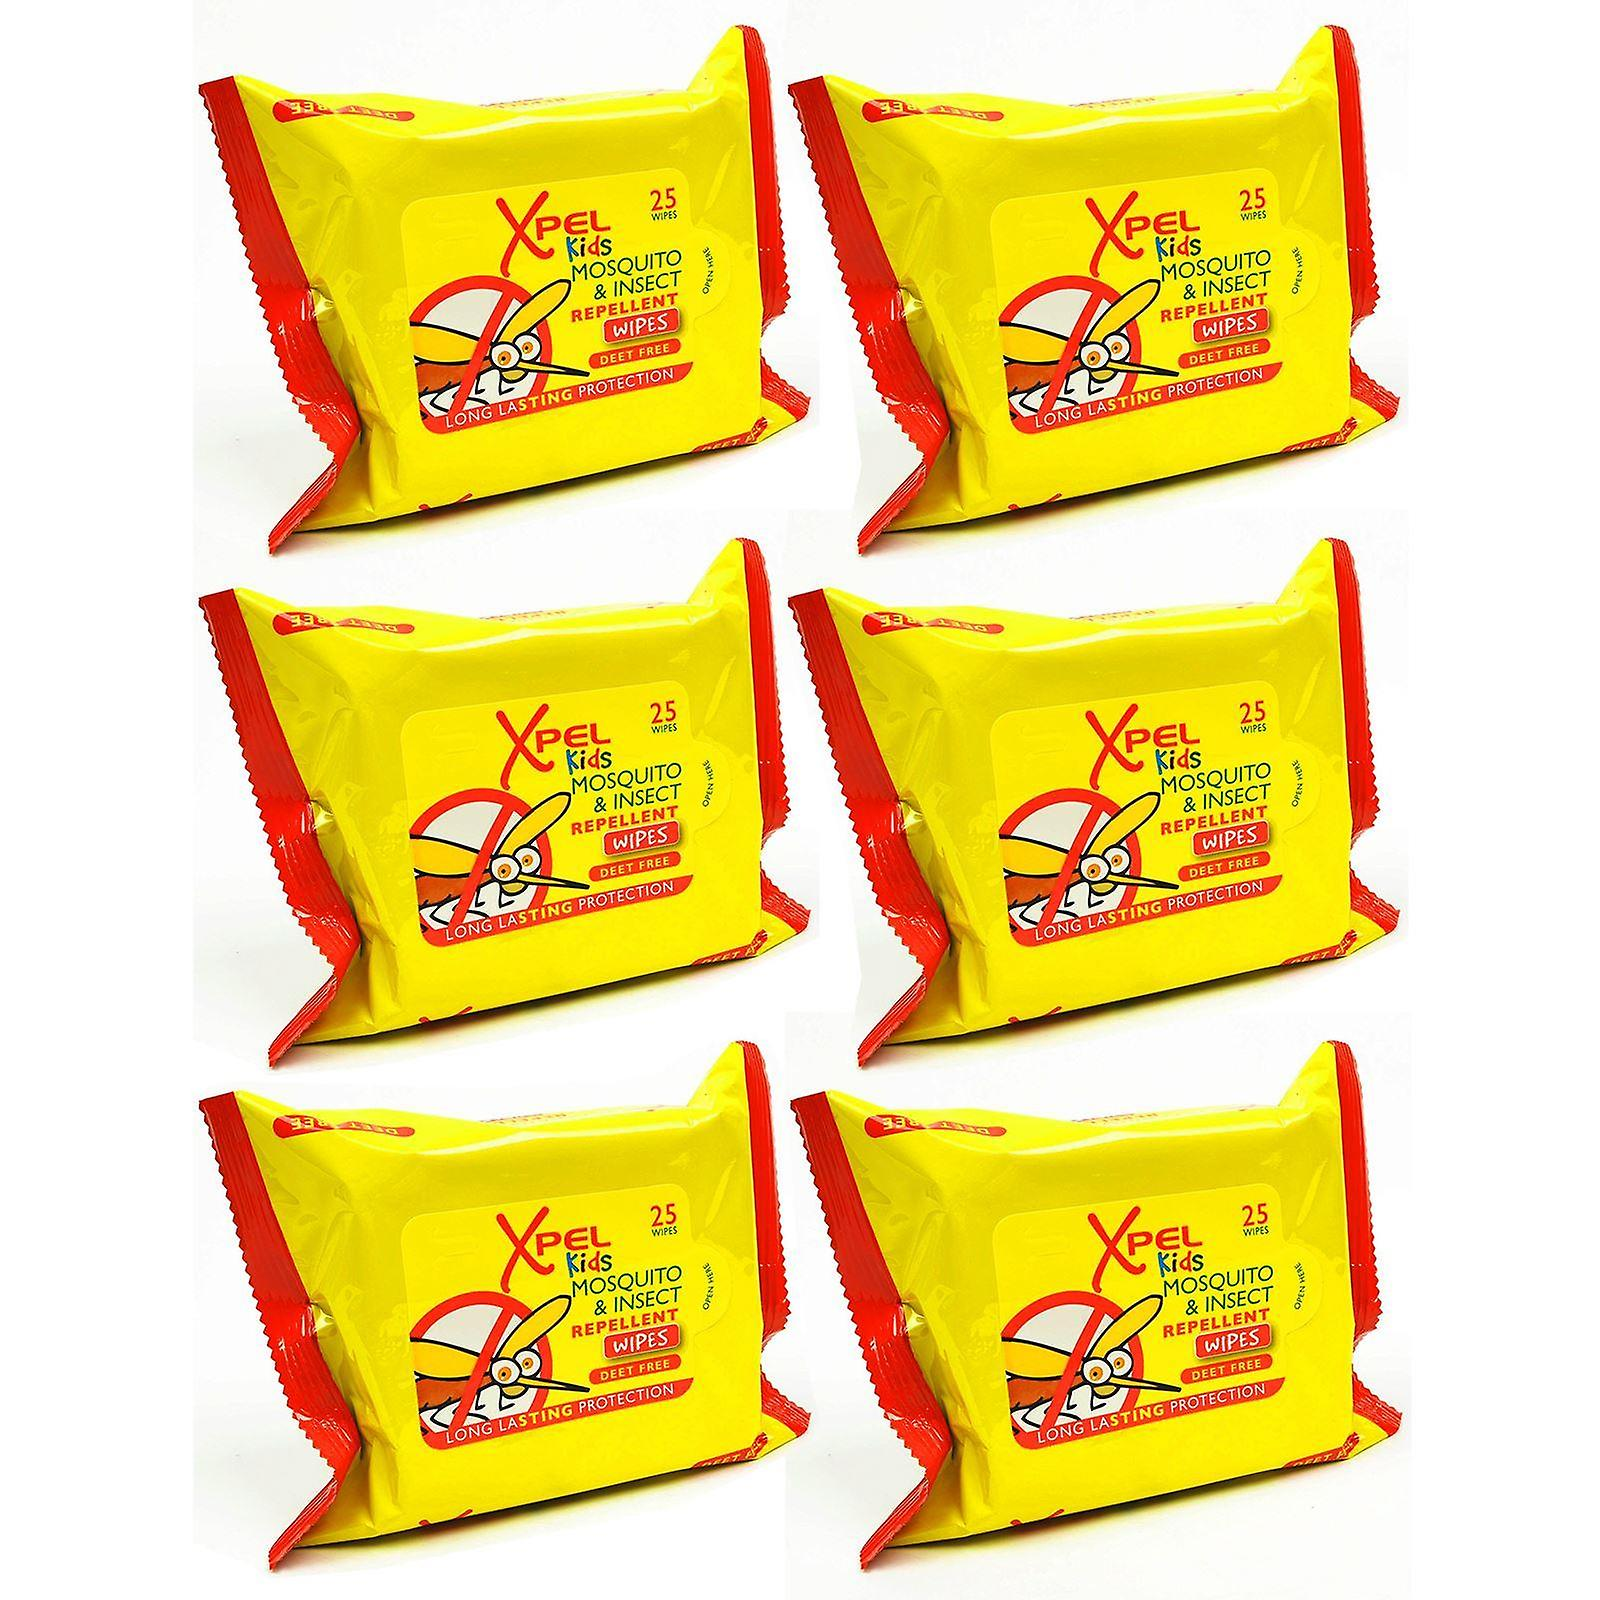 Xpel Kids Mosquito & Insect Repellent 25 Wipes - 6 Pack